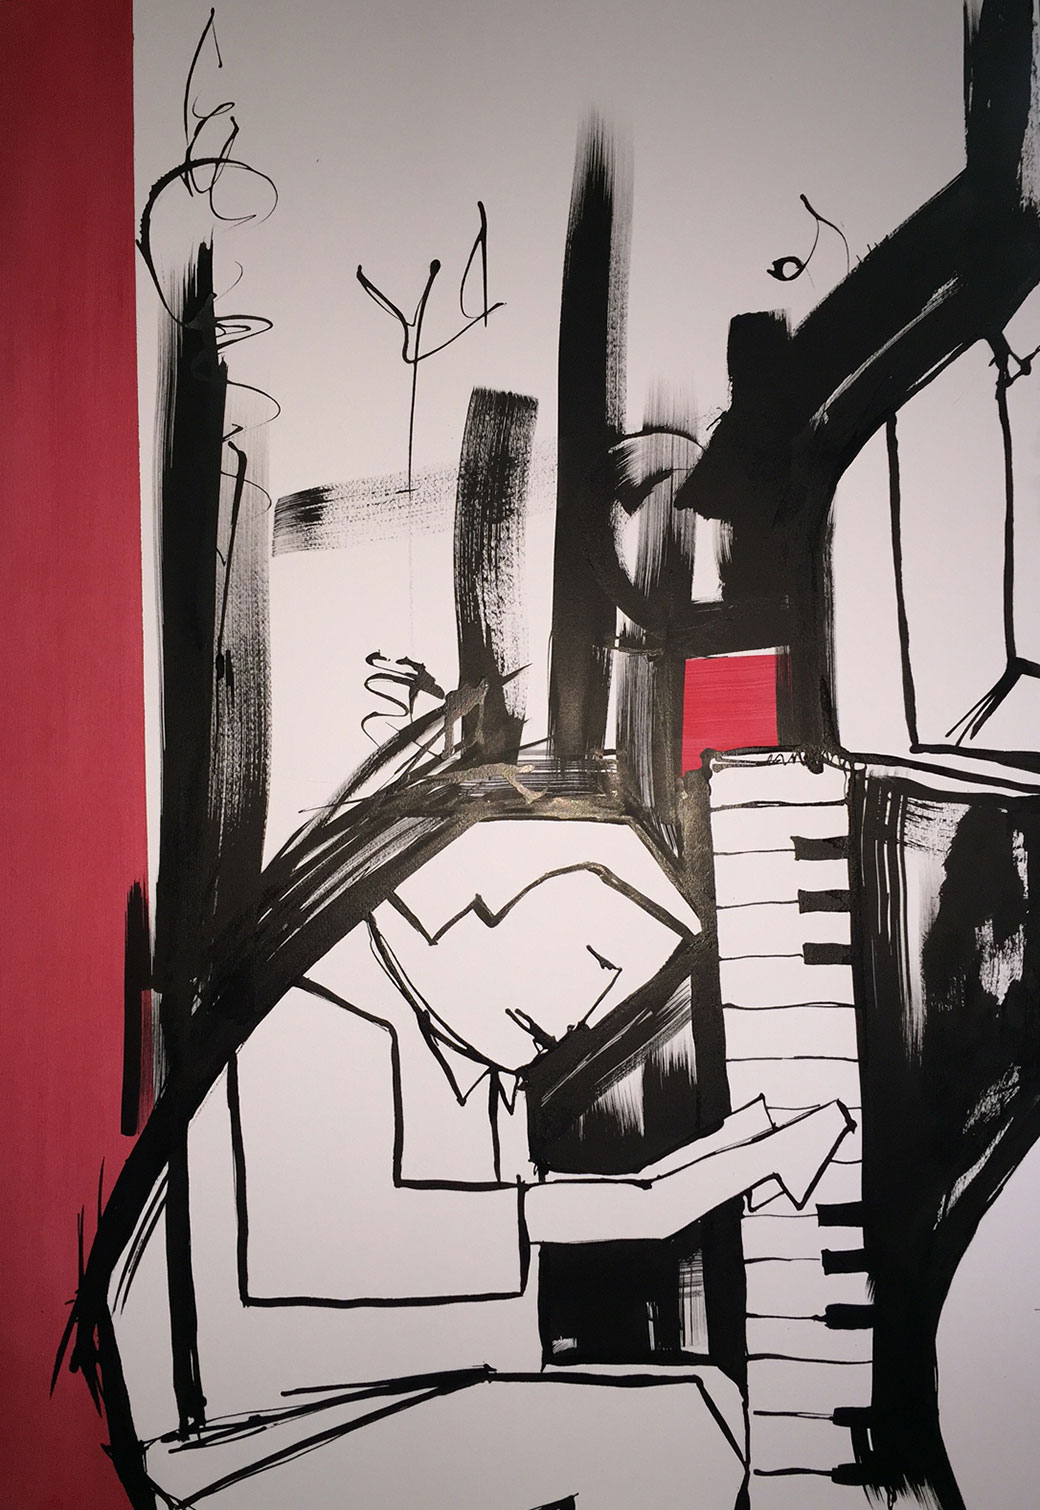 red-jazz-1-1-(-100x80cm)